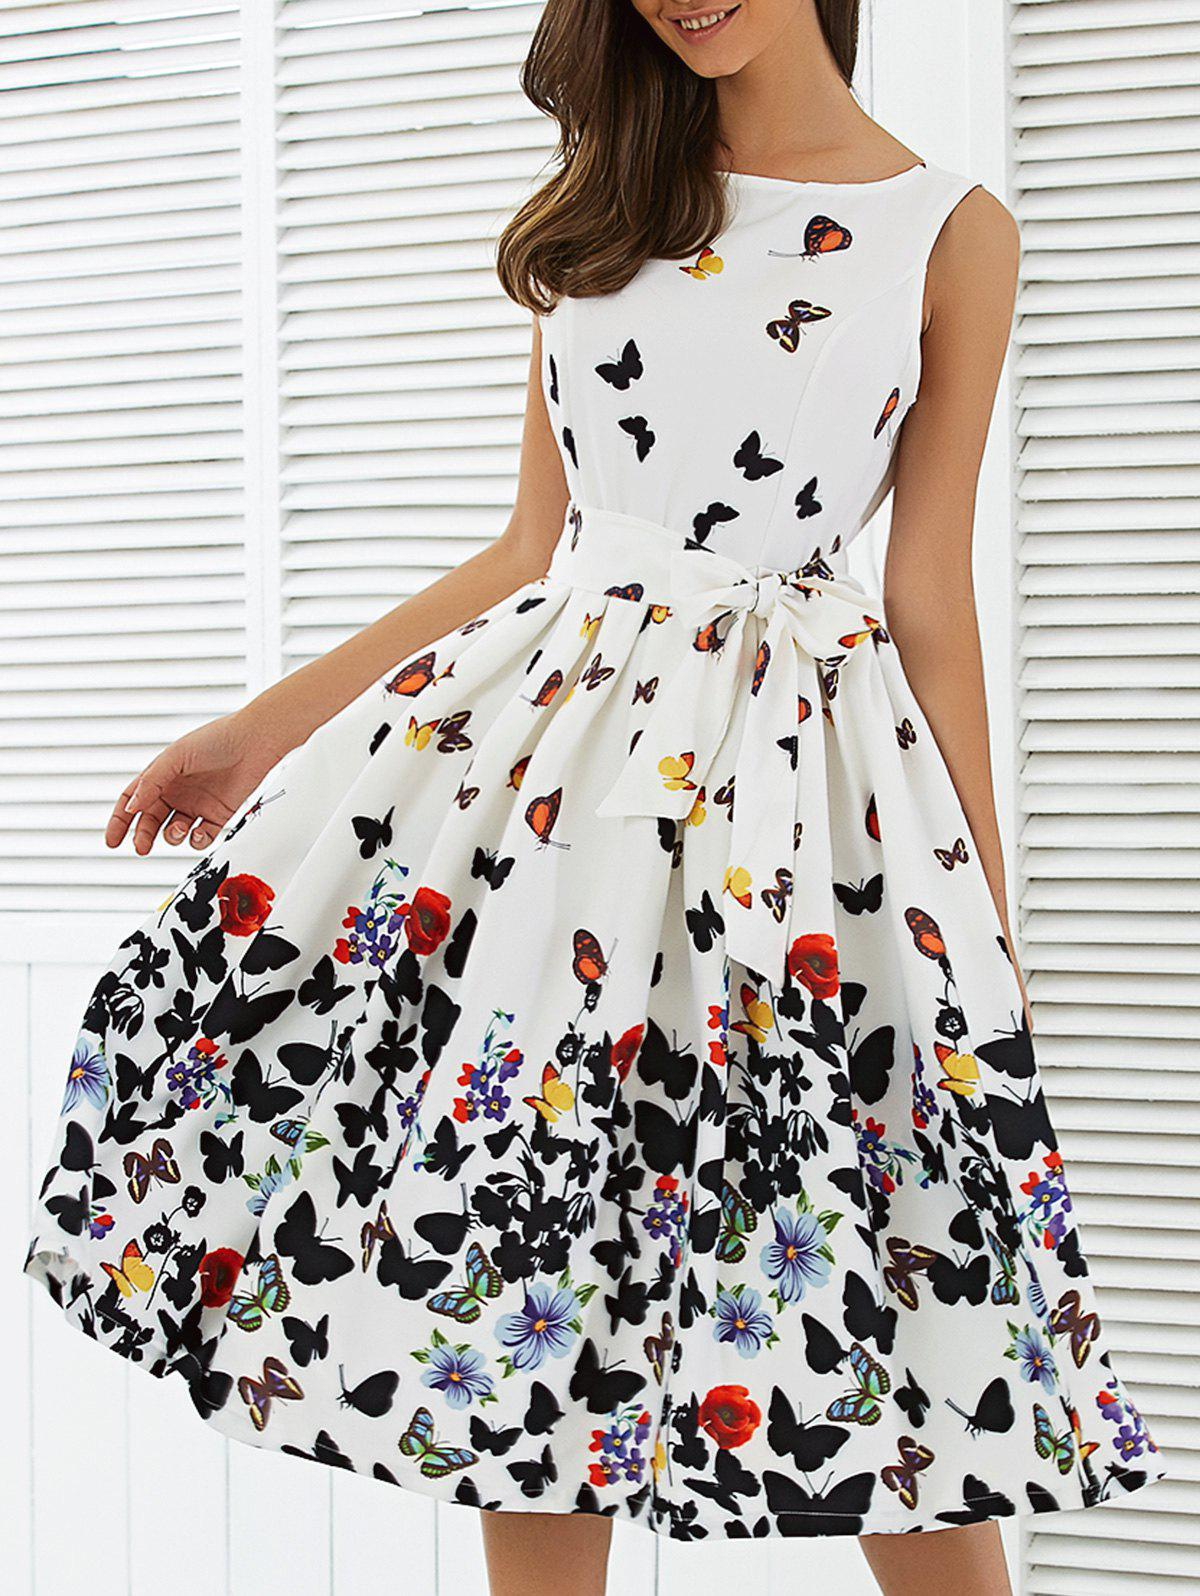 Sleeveless Floral Print Self Tie A Line DressWOMEN<br><br>Size: 2XL; Color: WHITE; Style: Brief; Material: Polyester; Silhouette: A-Line; Dresses Length: Knee-Length; Neckline: Round Collar; Sleeve Length: Sleeveless; Pattern Type: Floral; With Belt: Yes; Season: Fall,Spring; Weight: 0.343kg; Package Contents: 1 x Dress  1 x Belt;